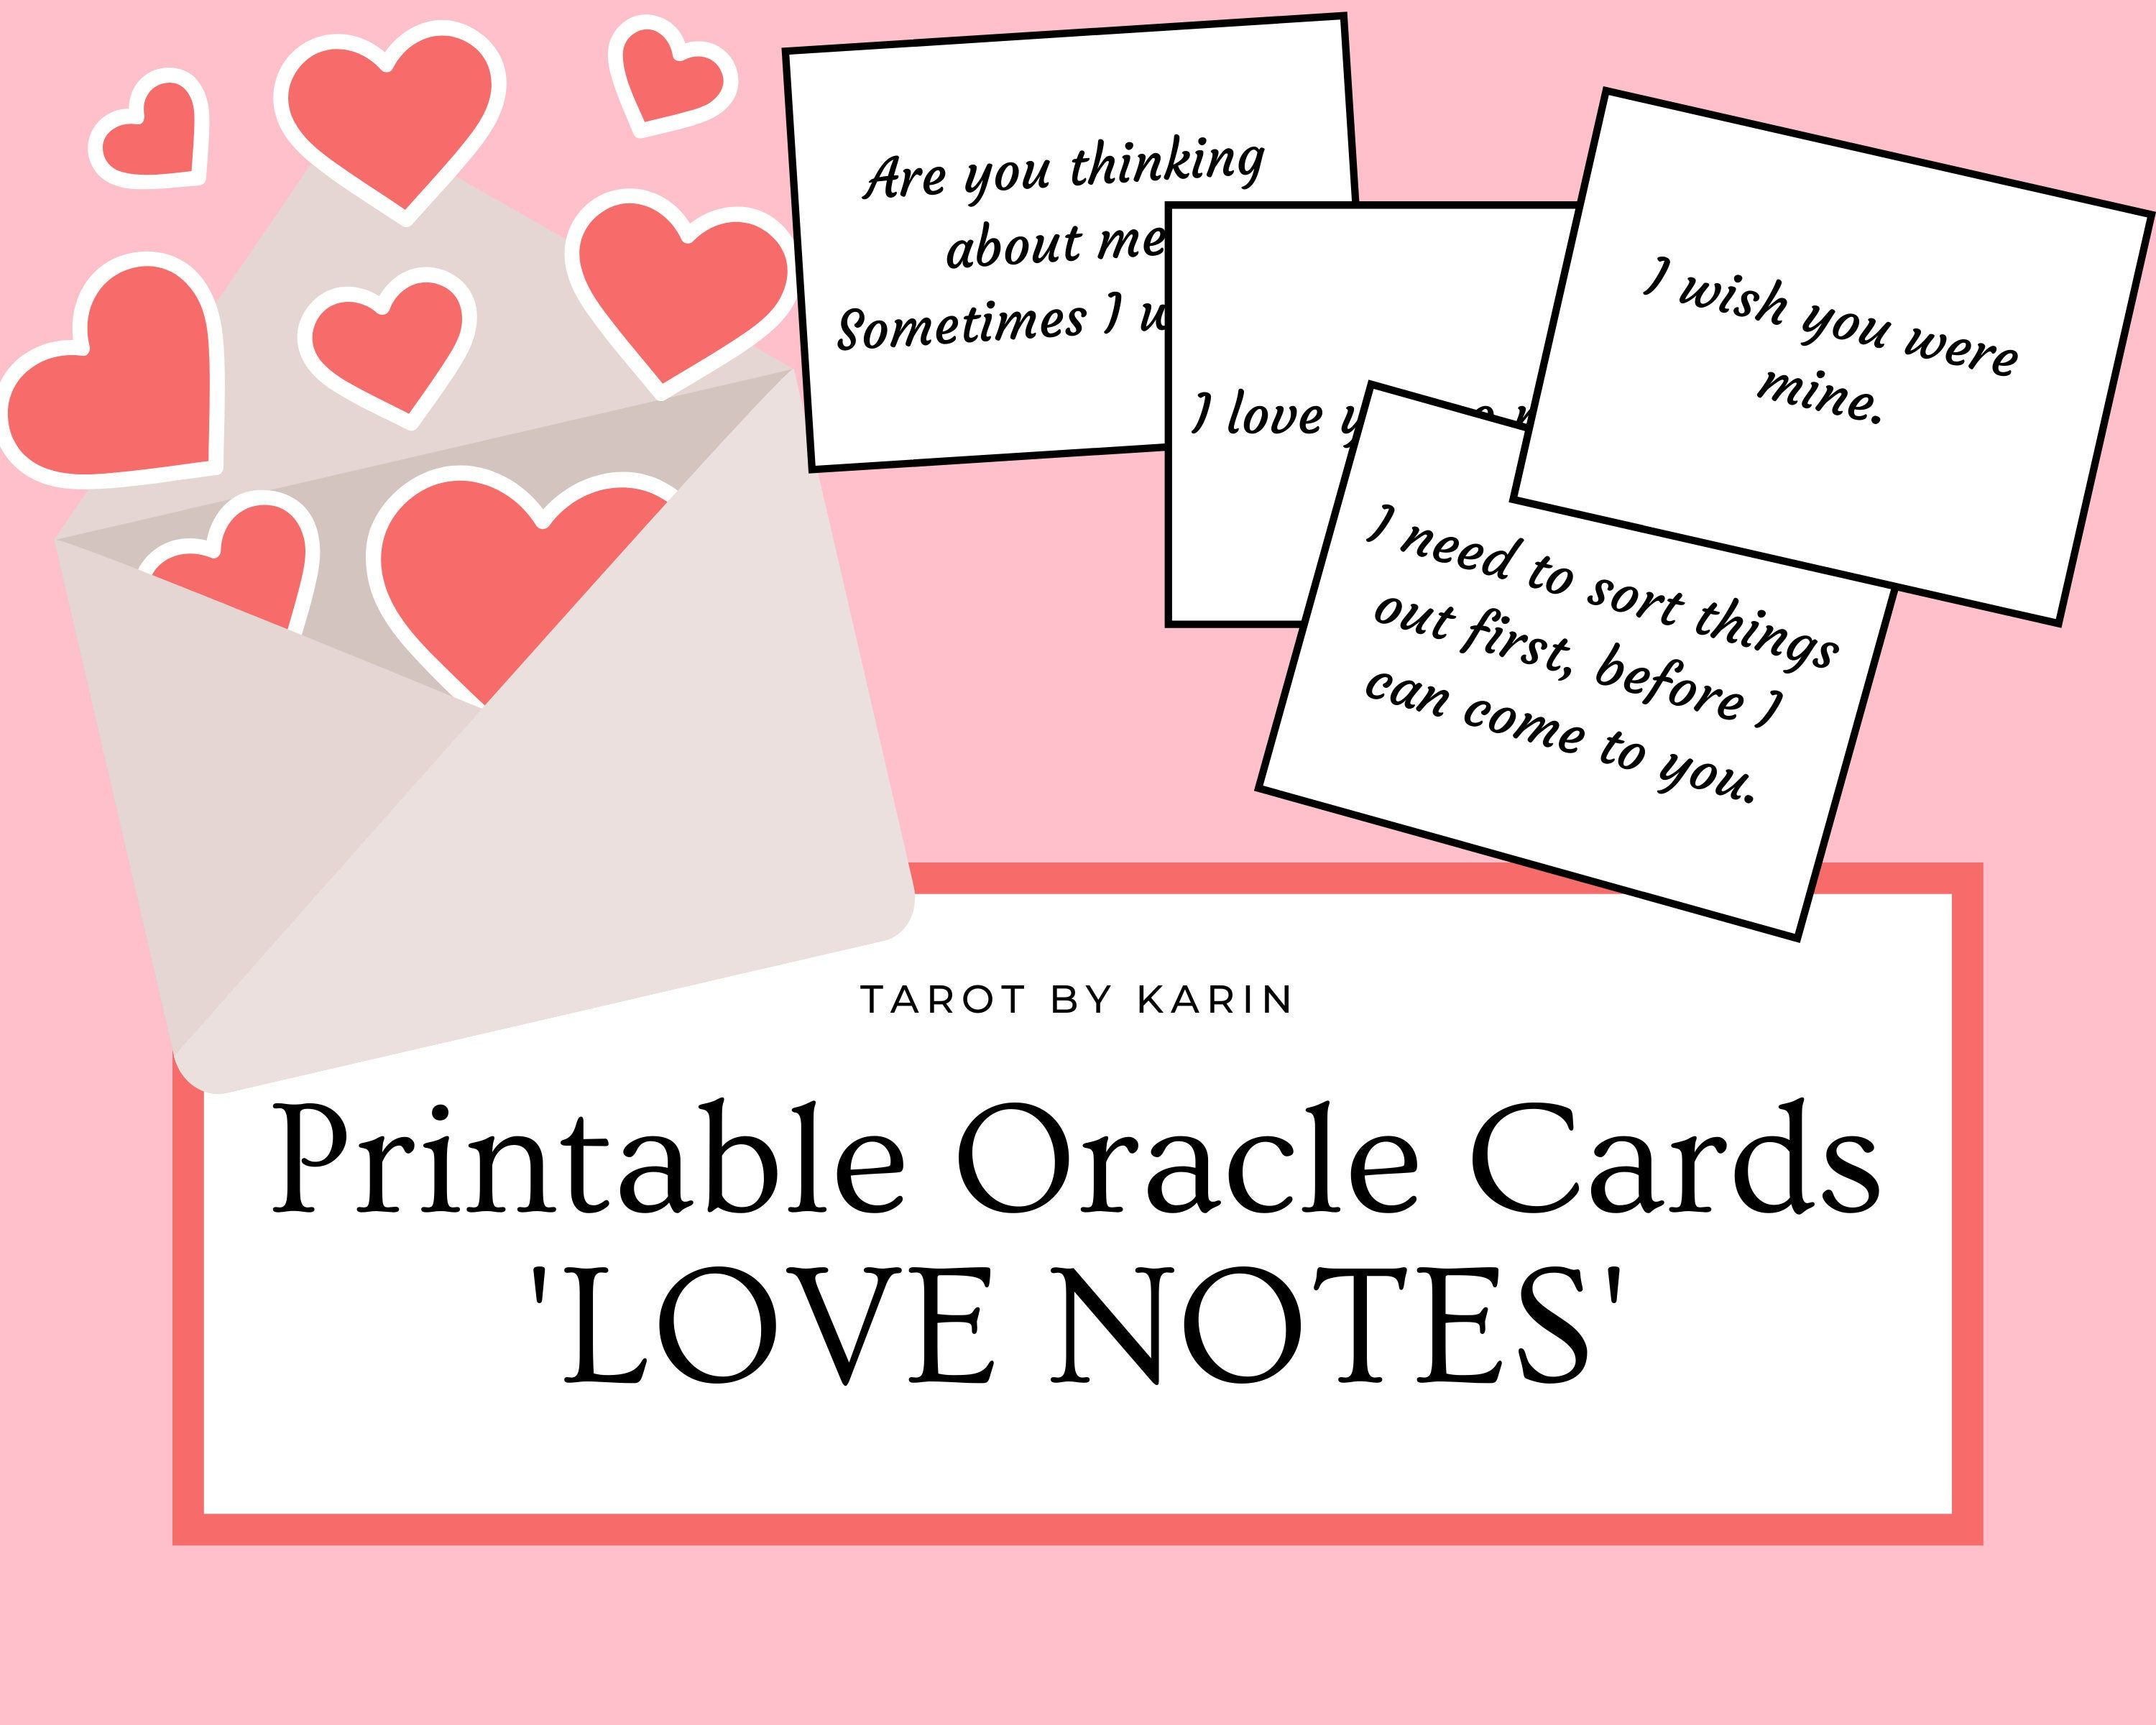 Pin On Printable Oracle Cards Instant Digital Downloads